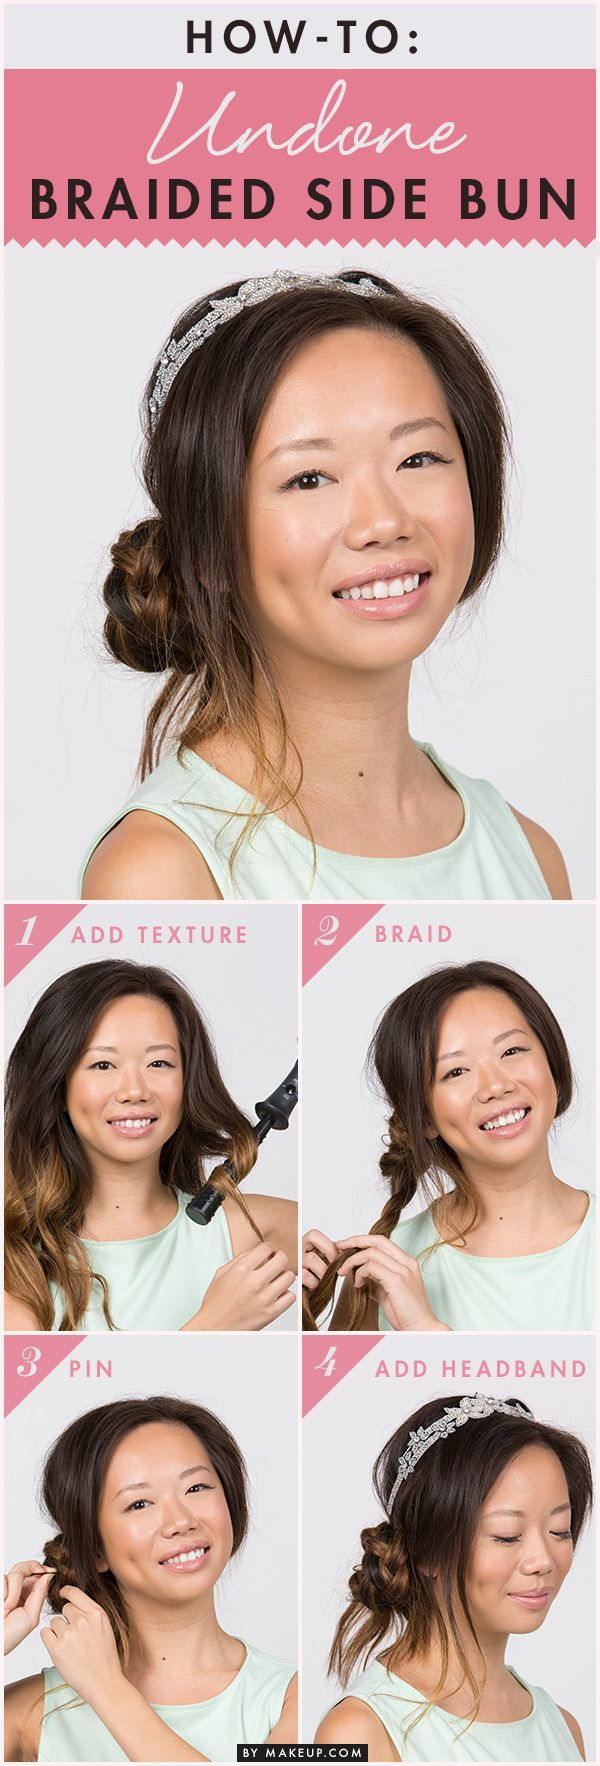 A braided side bun is the perfect look for girls that want to look effortless yet polished. In just six steps, our hair tutorial will help anyone master this simple, cool hairstyle.